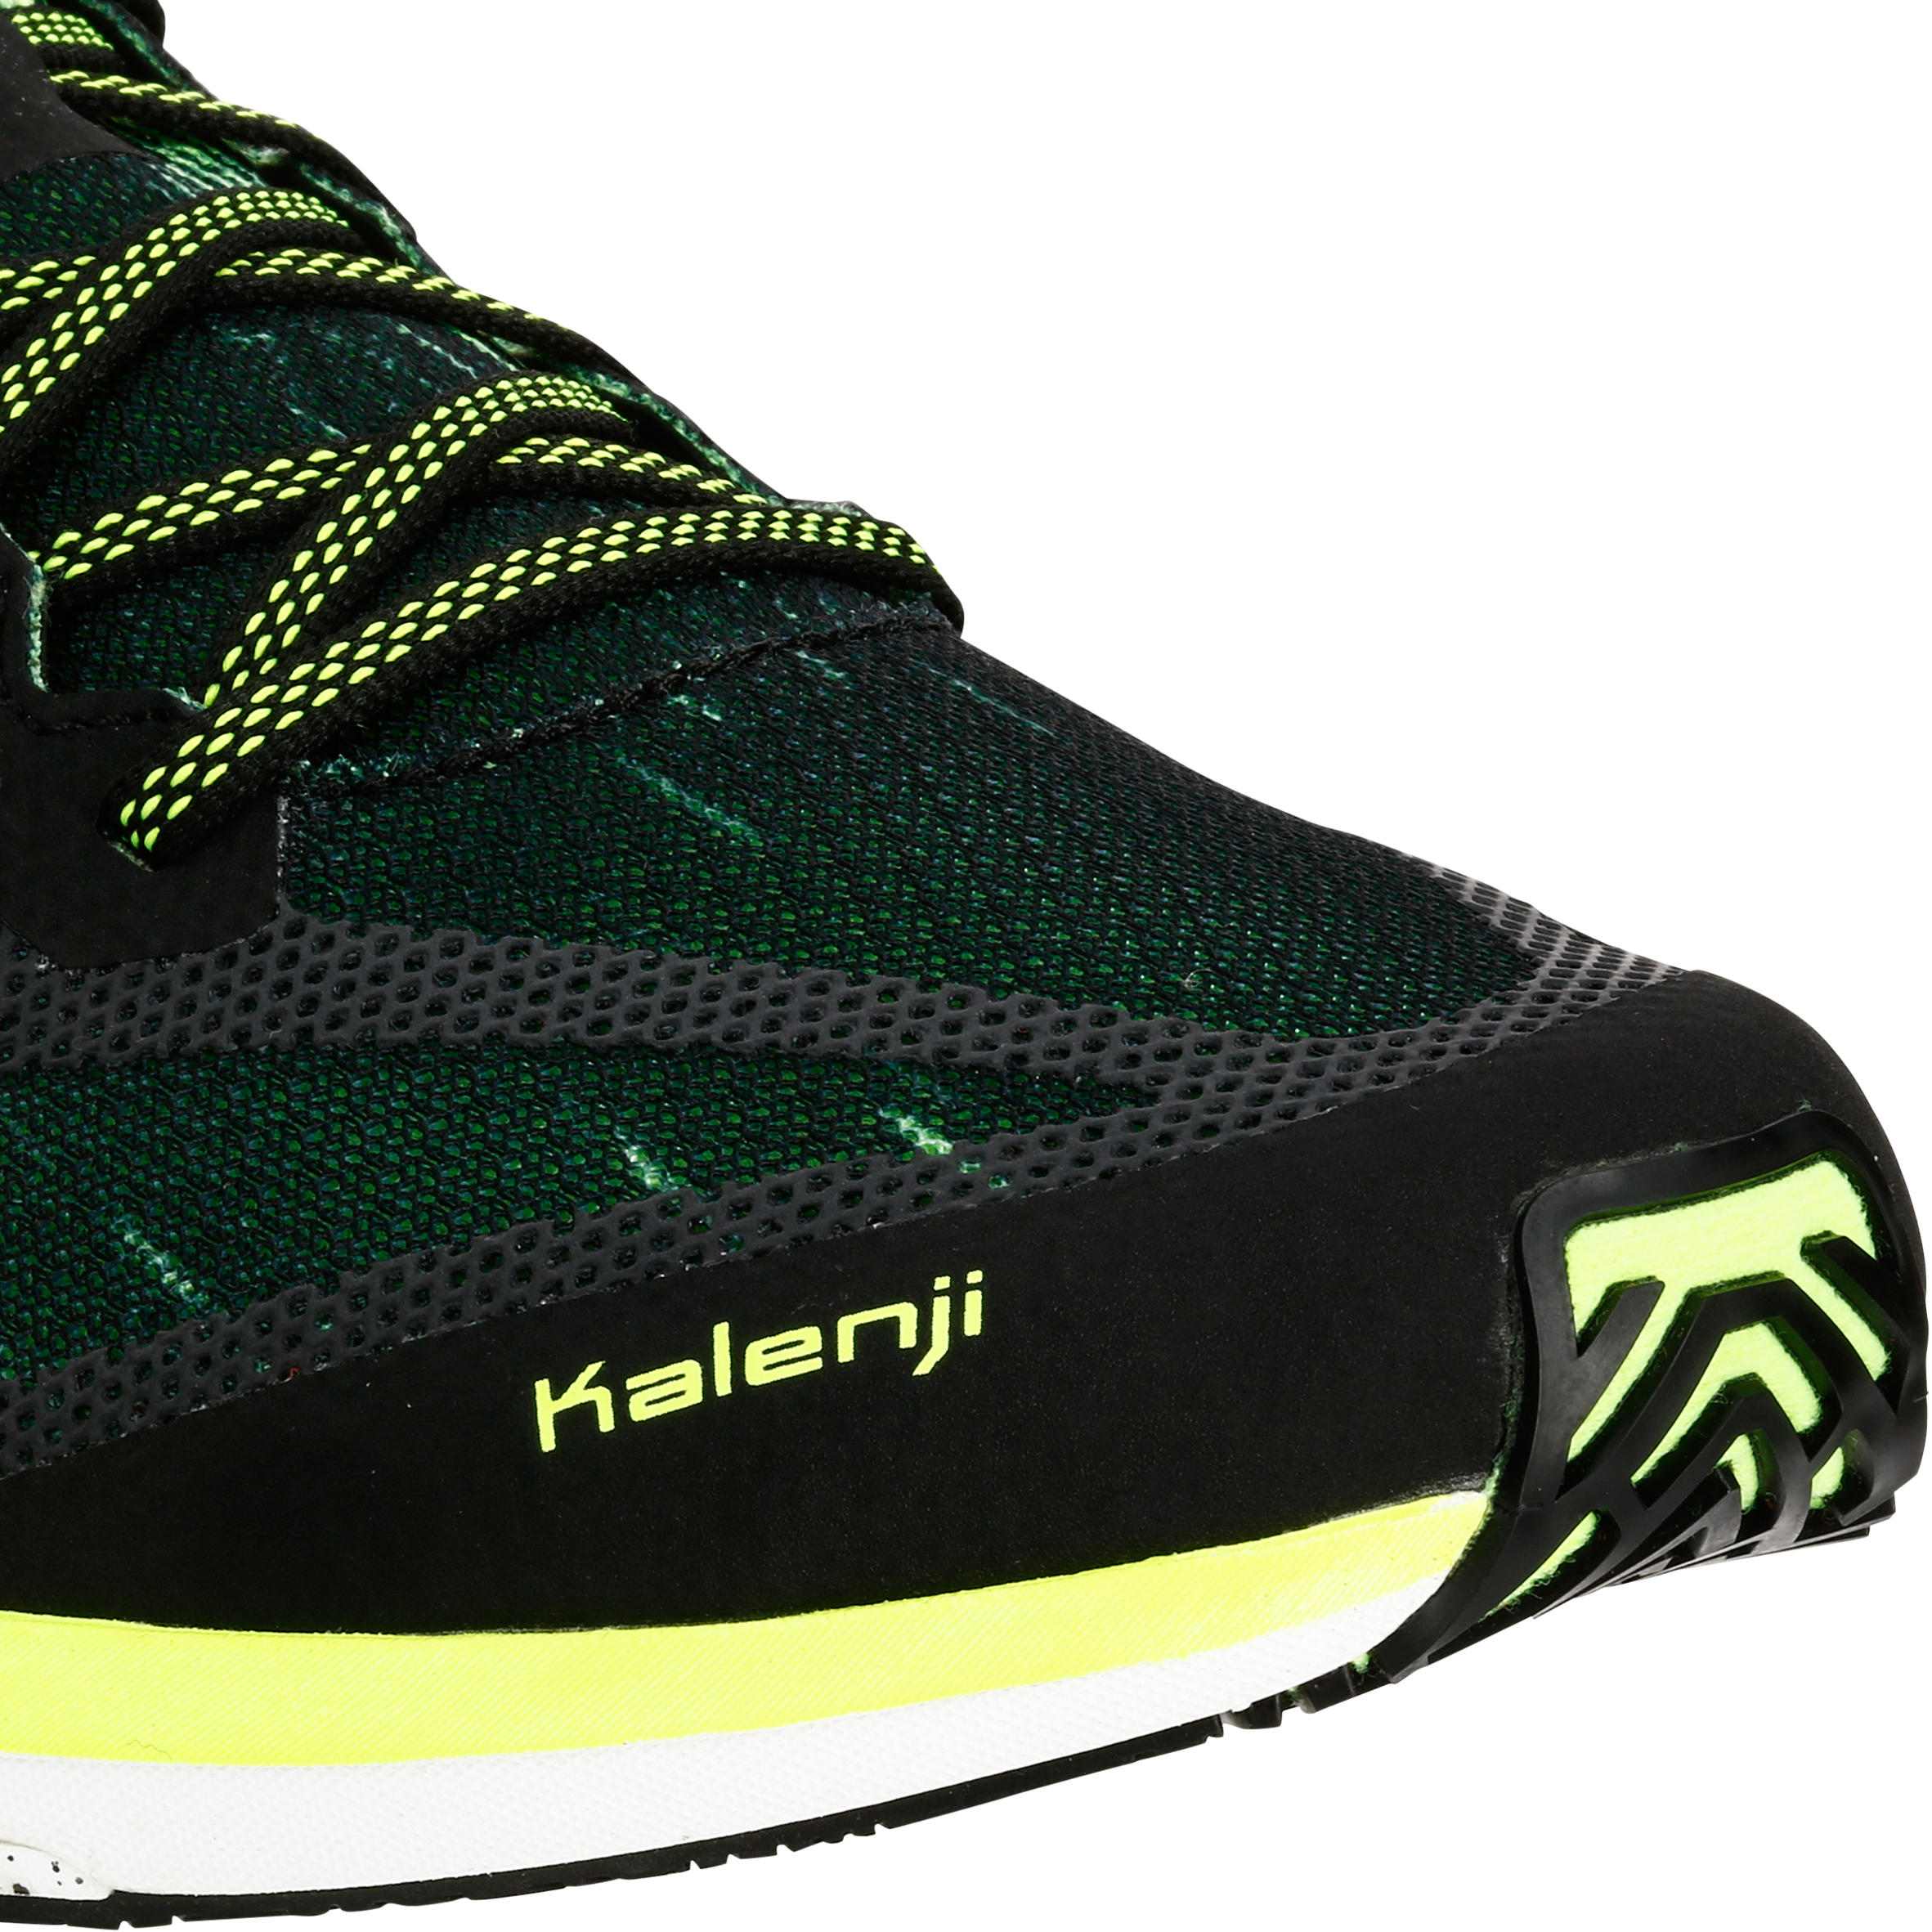 KIPRUN RACE MEN'S RUNNING SHOES - BLACK/YELLOW